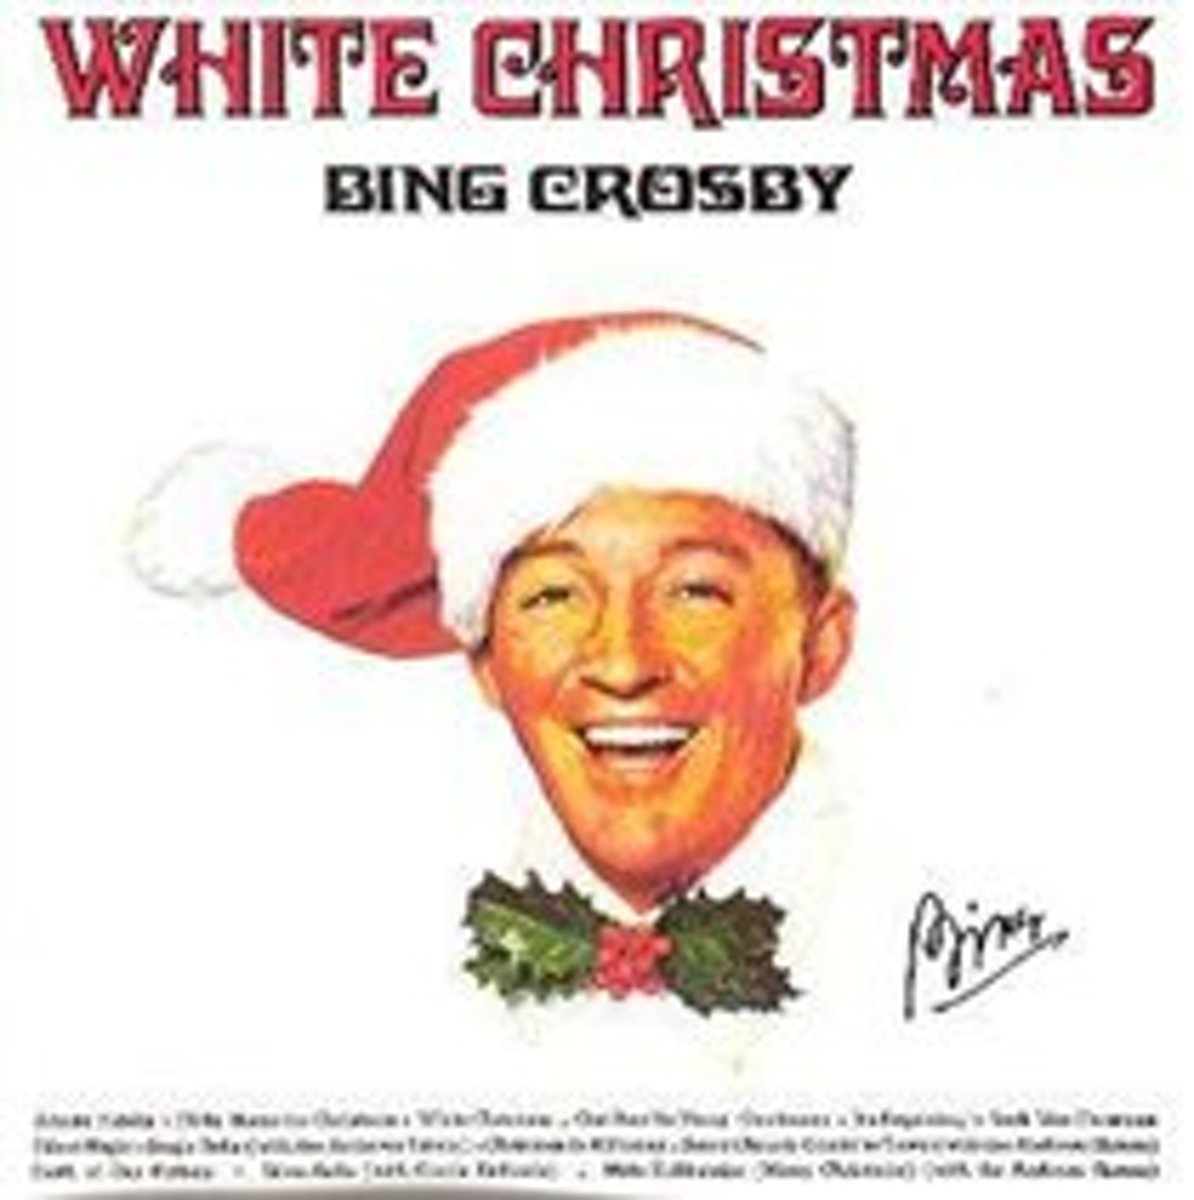 bol.com | White Christmas, Bing Crosby | CD (album) | Muziek